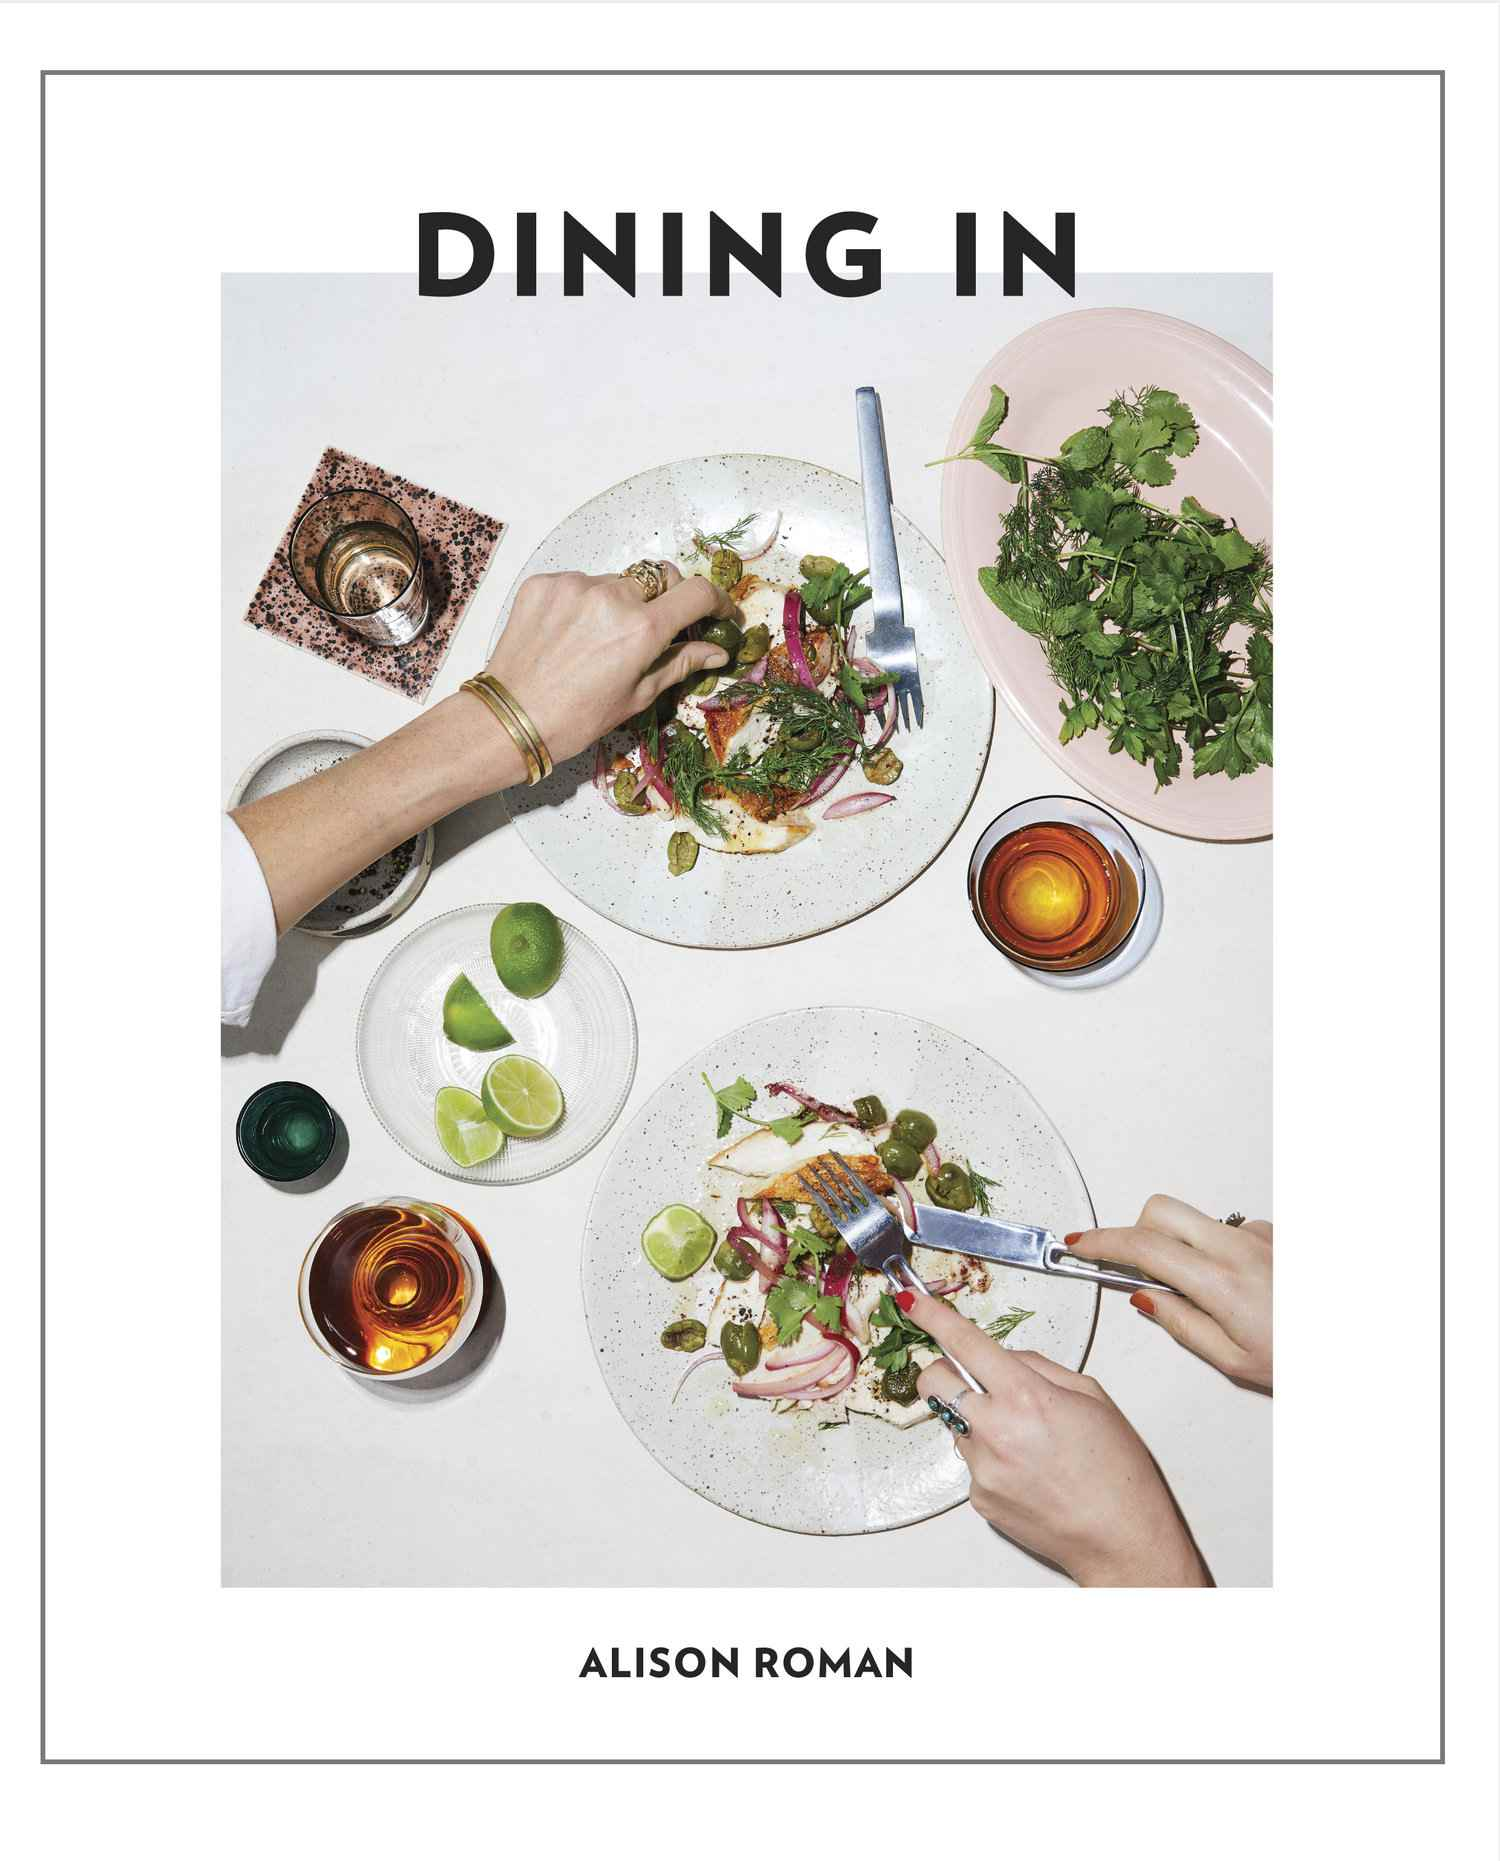 Cover of Dining In cookbook by Alison Roman